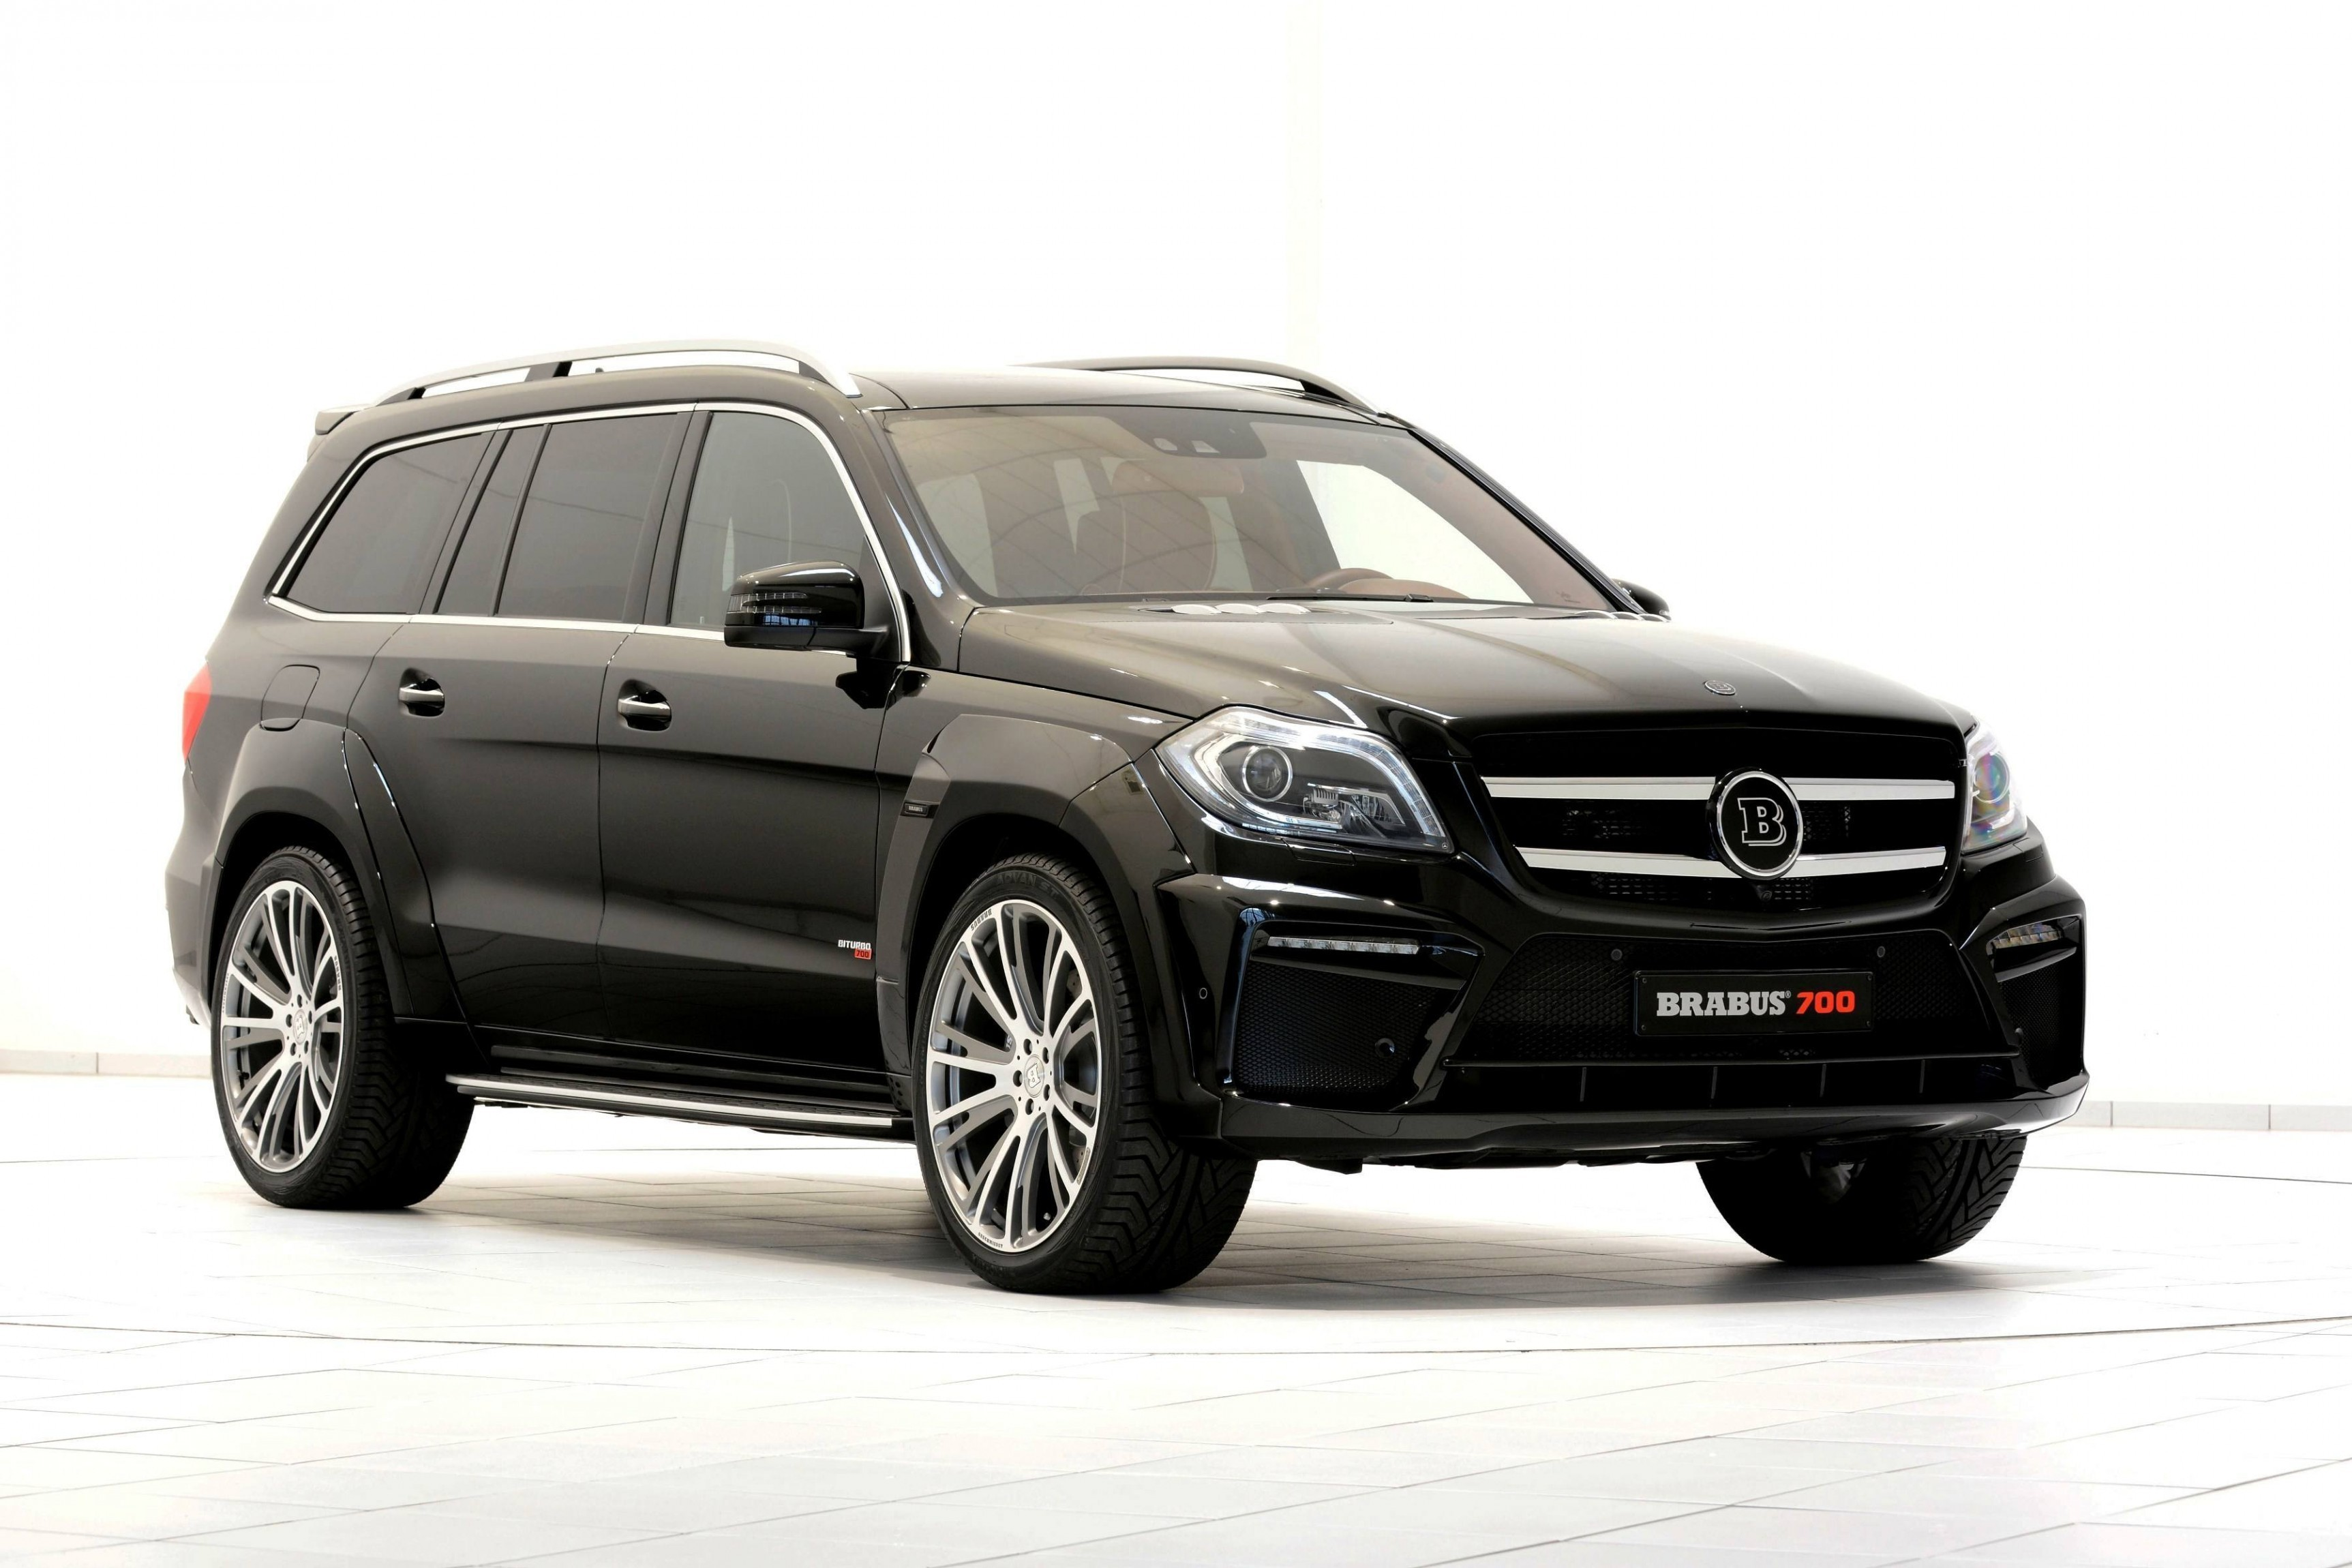 186mph 7 seat suv brabus b63s 700 widestar for mercedes benz gl class. Black Bedroom Furniture Sets. Home Design Ideas